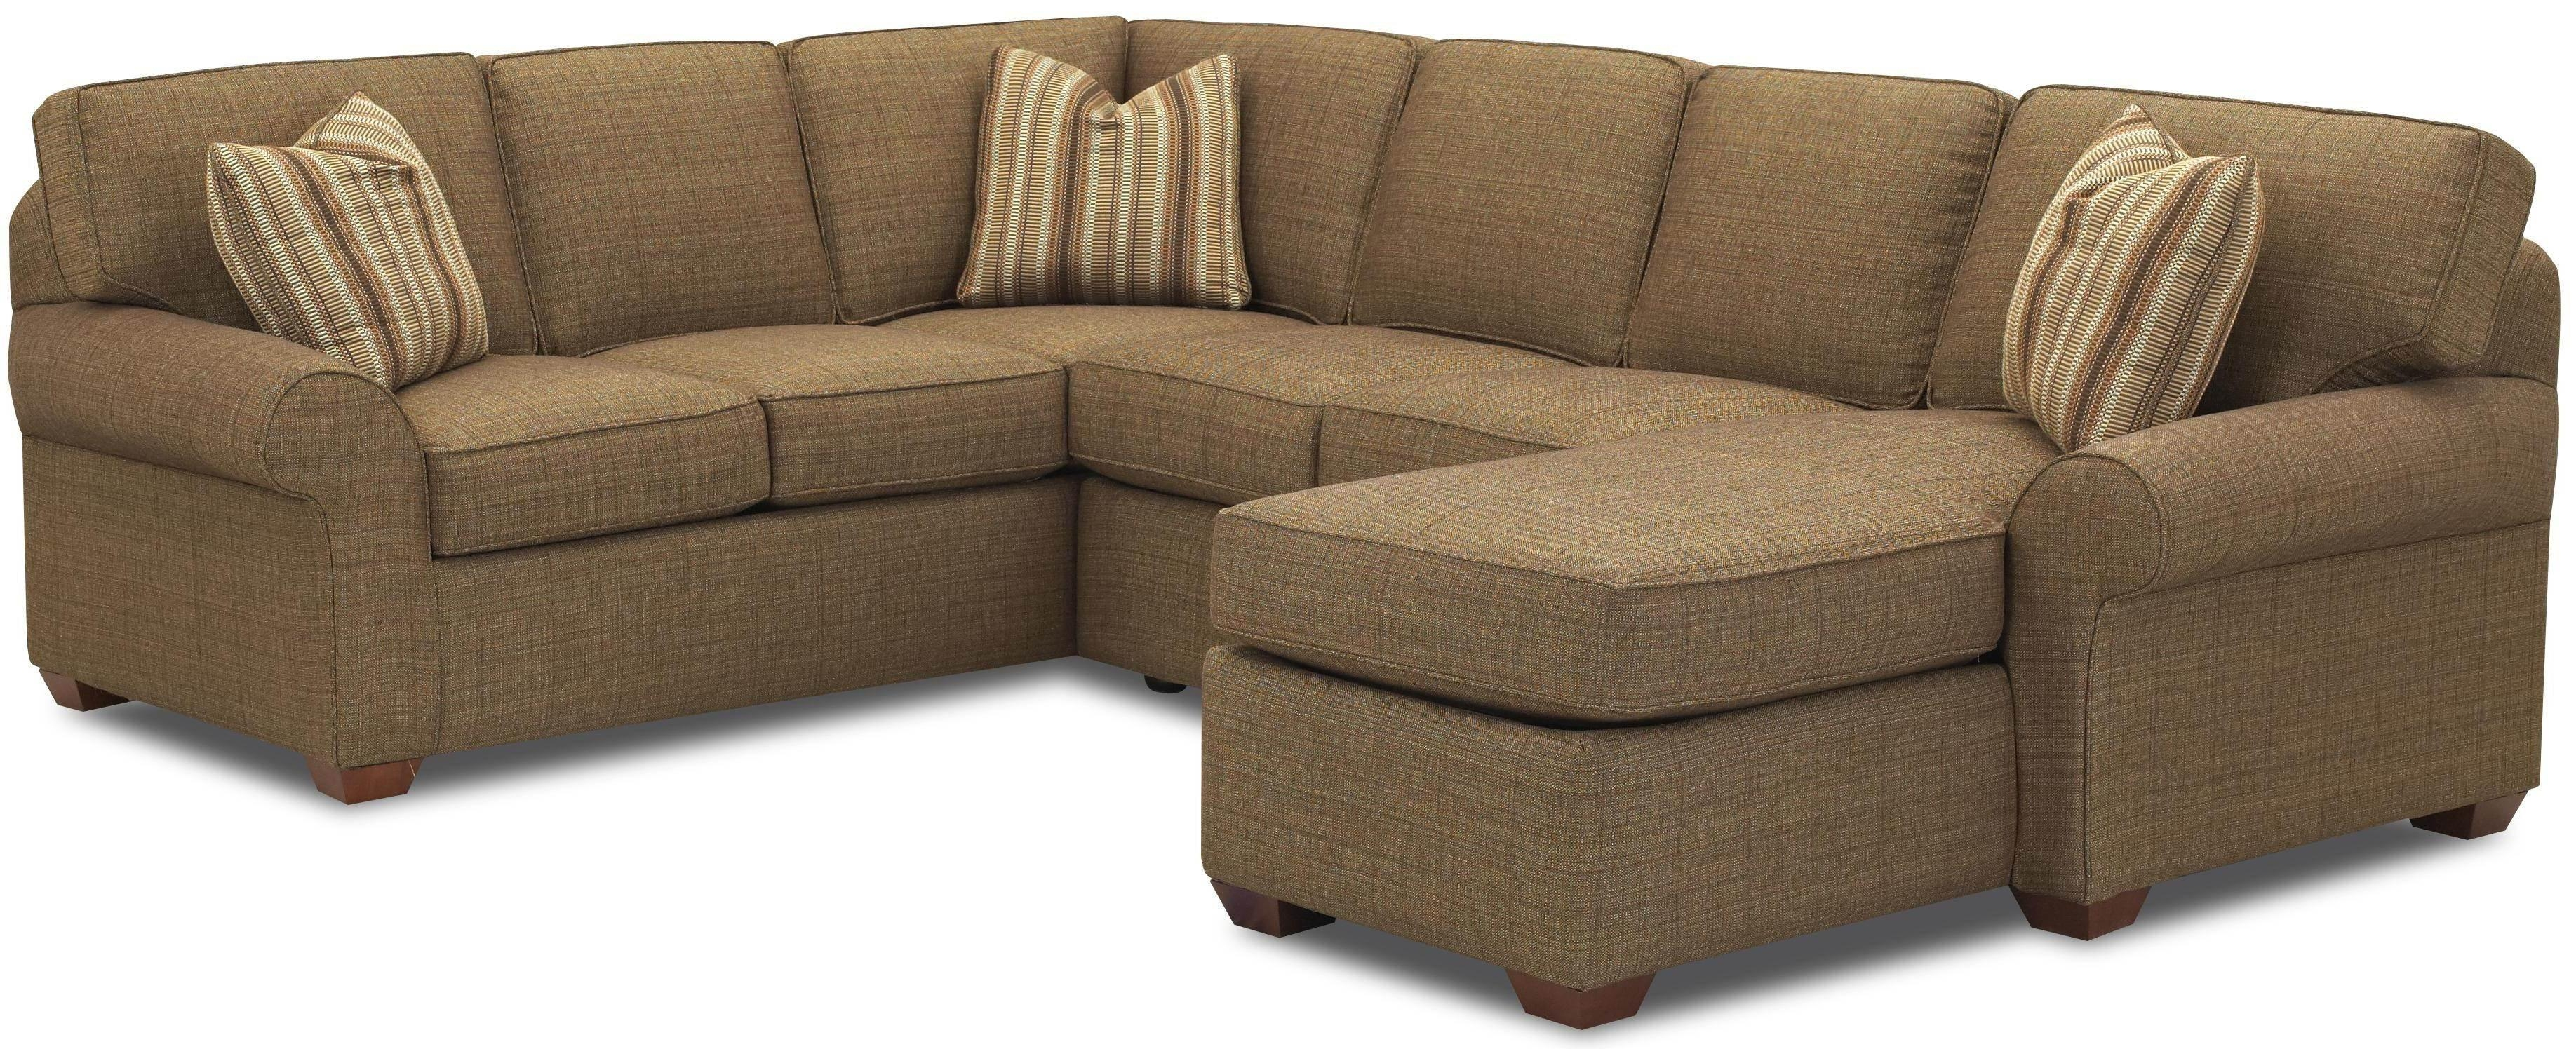 Boston Interiors Sofa | Sofa Gallery | Kengire With Boston Interiors Sofas (Image 6 of 20)